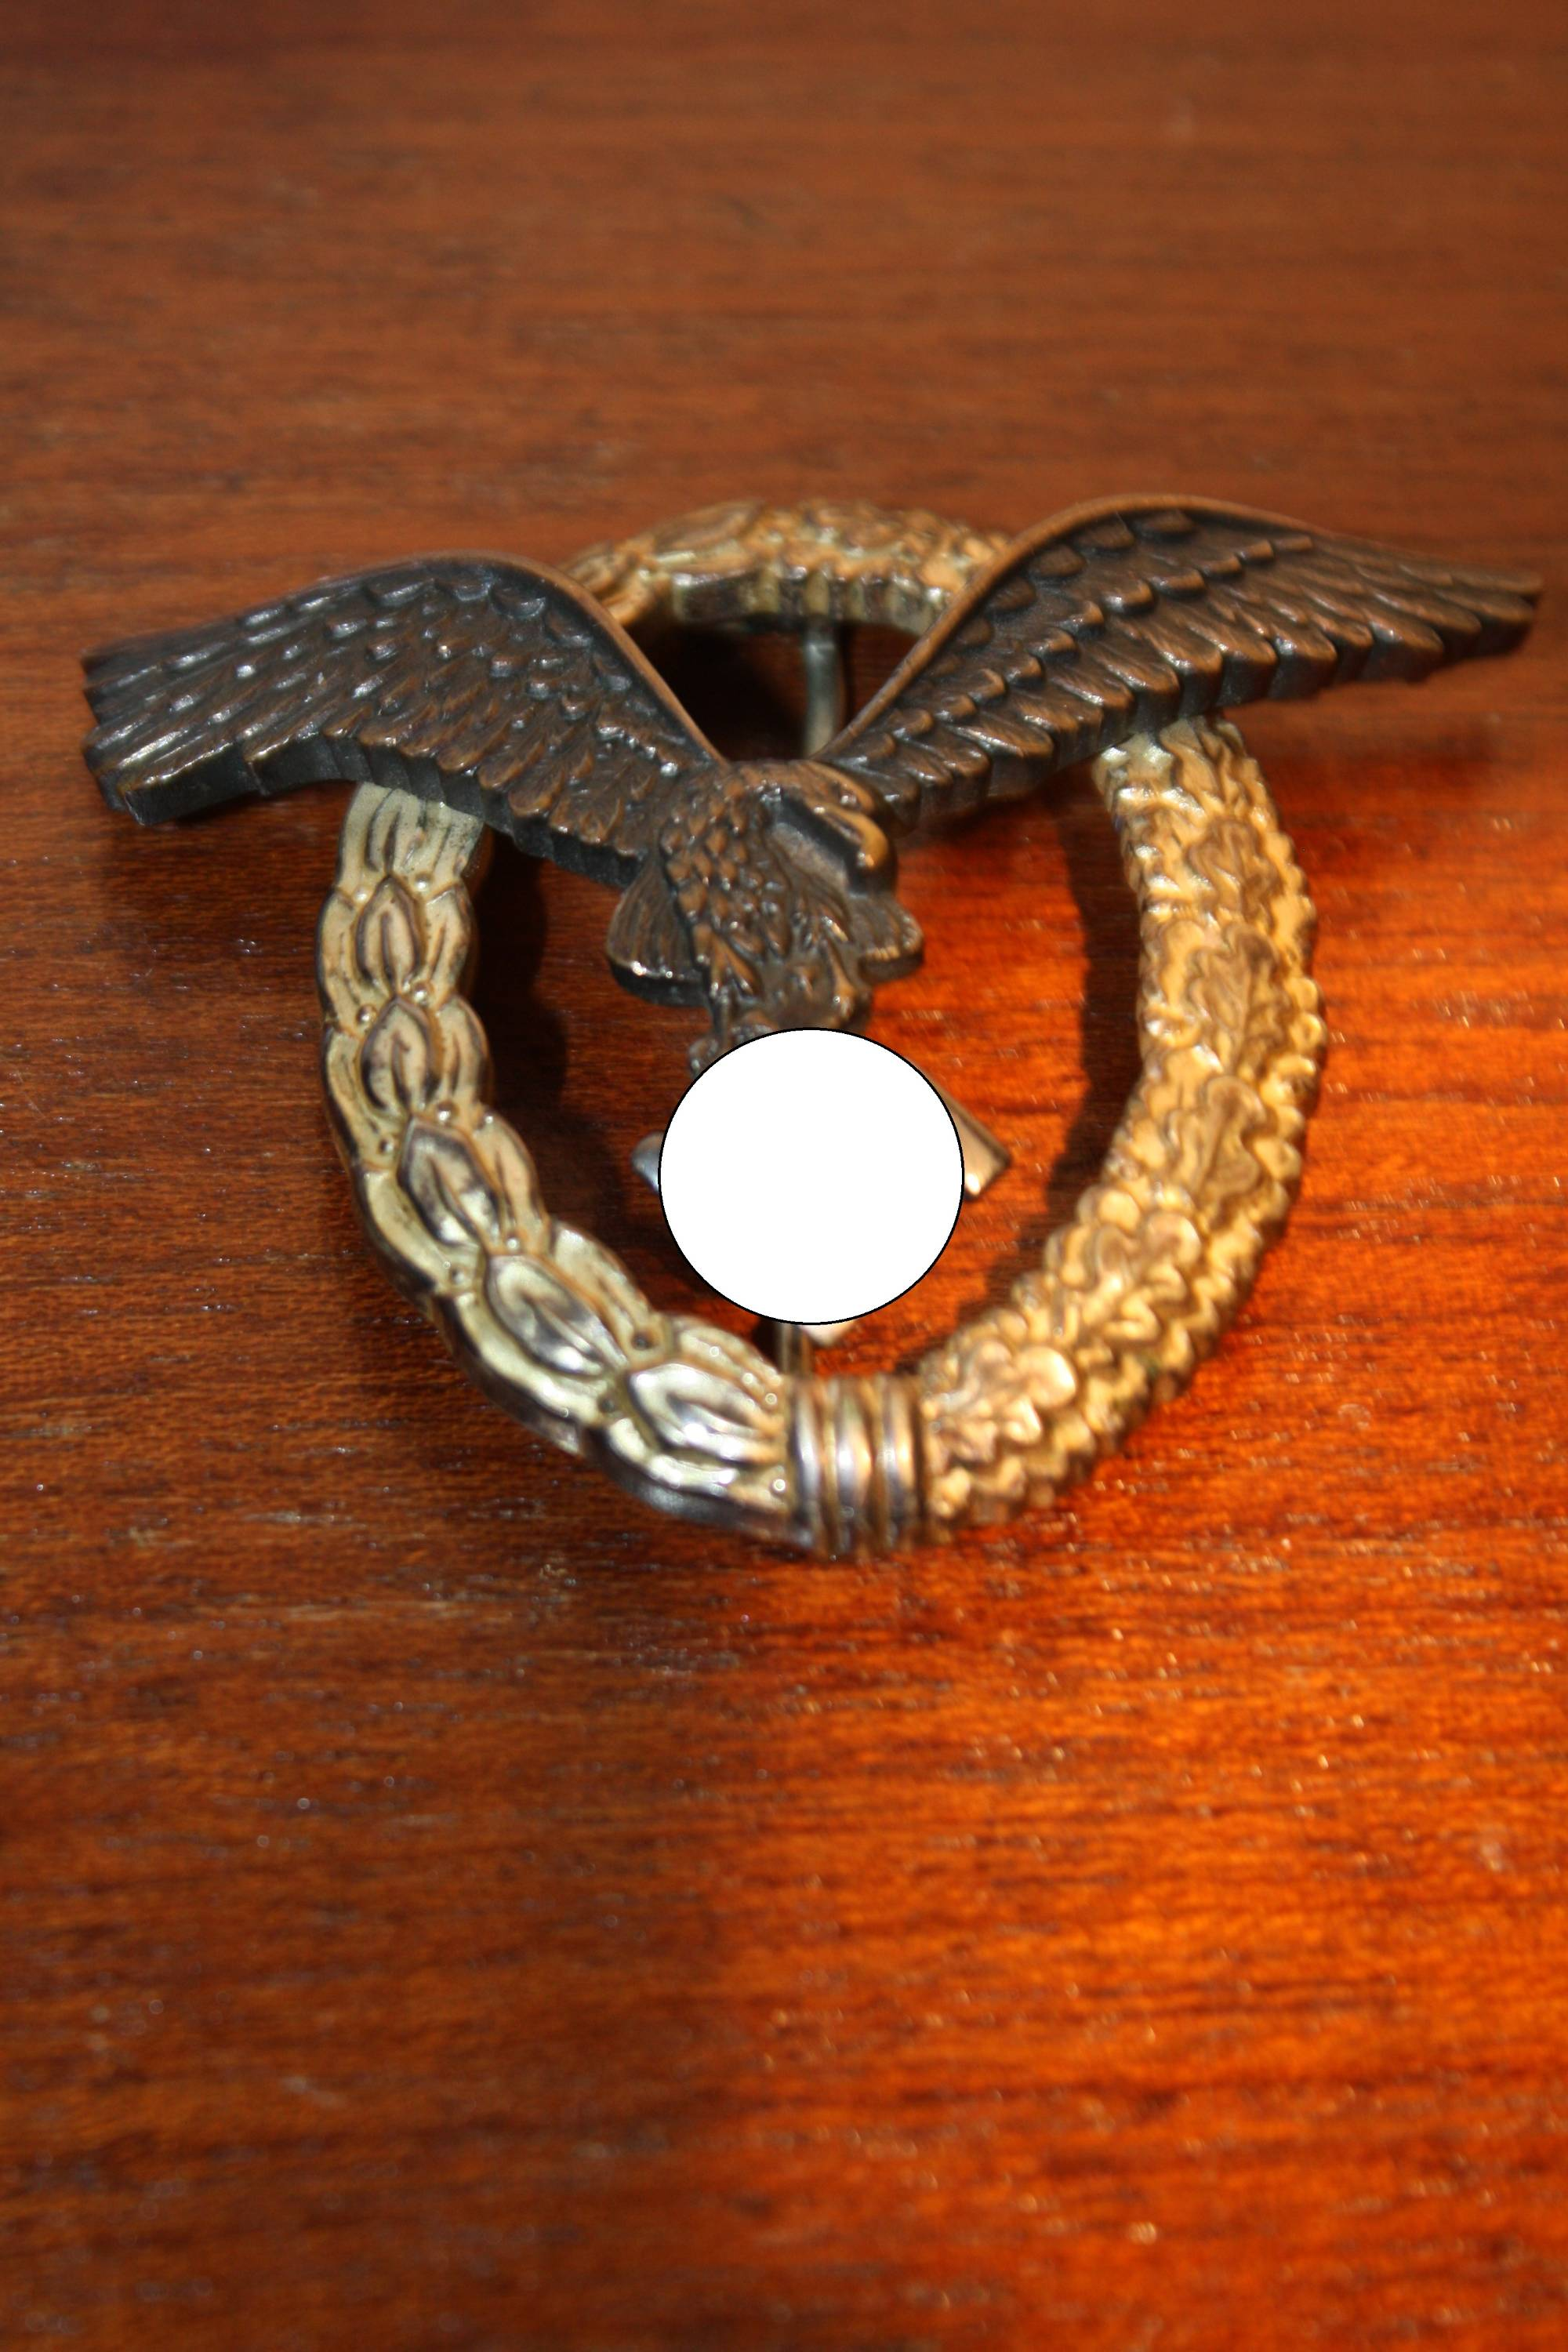 A German World War 2 medal pilot flight officer badge